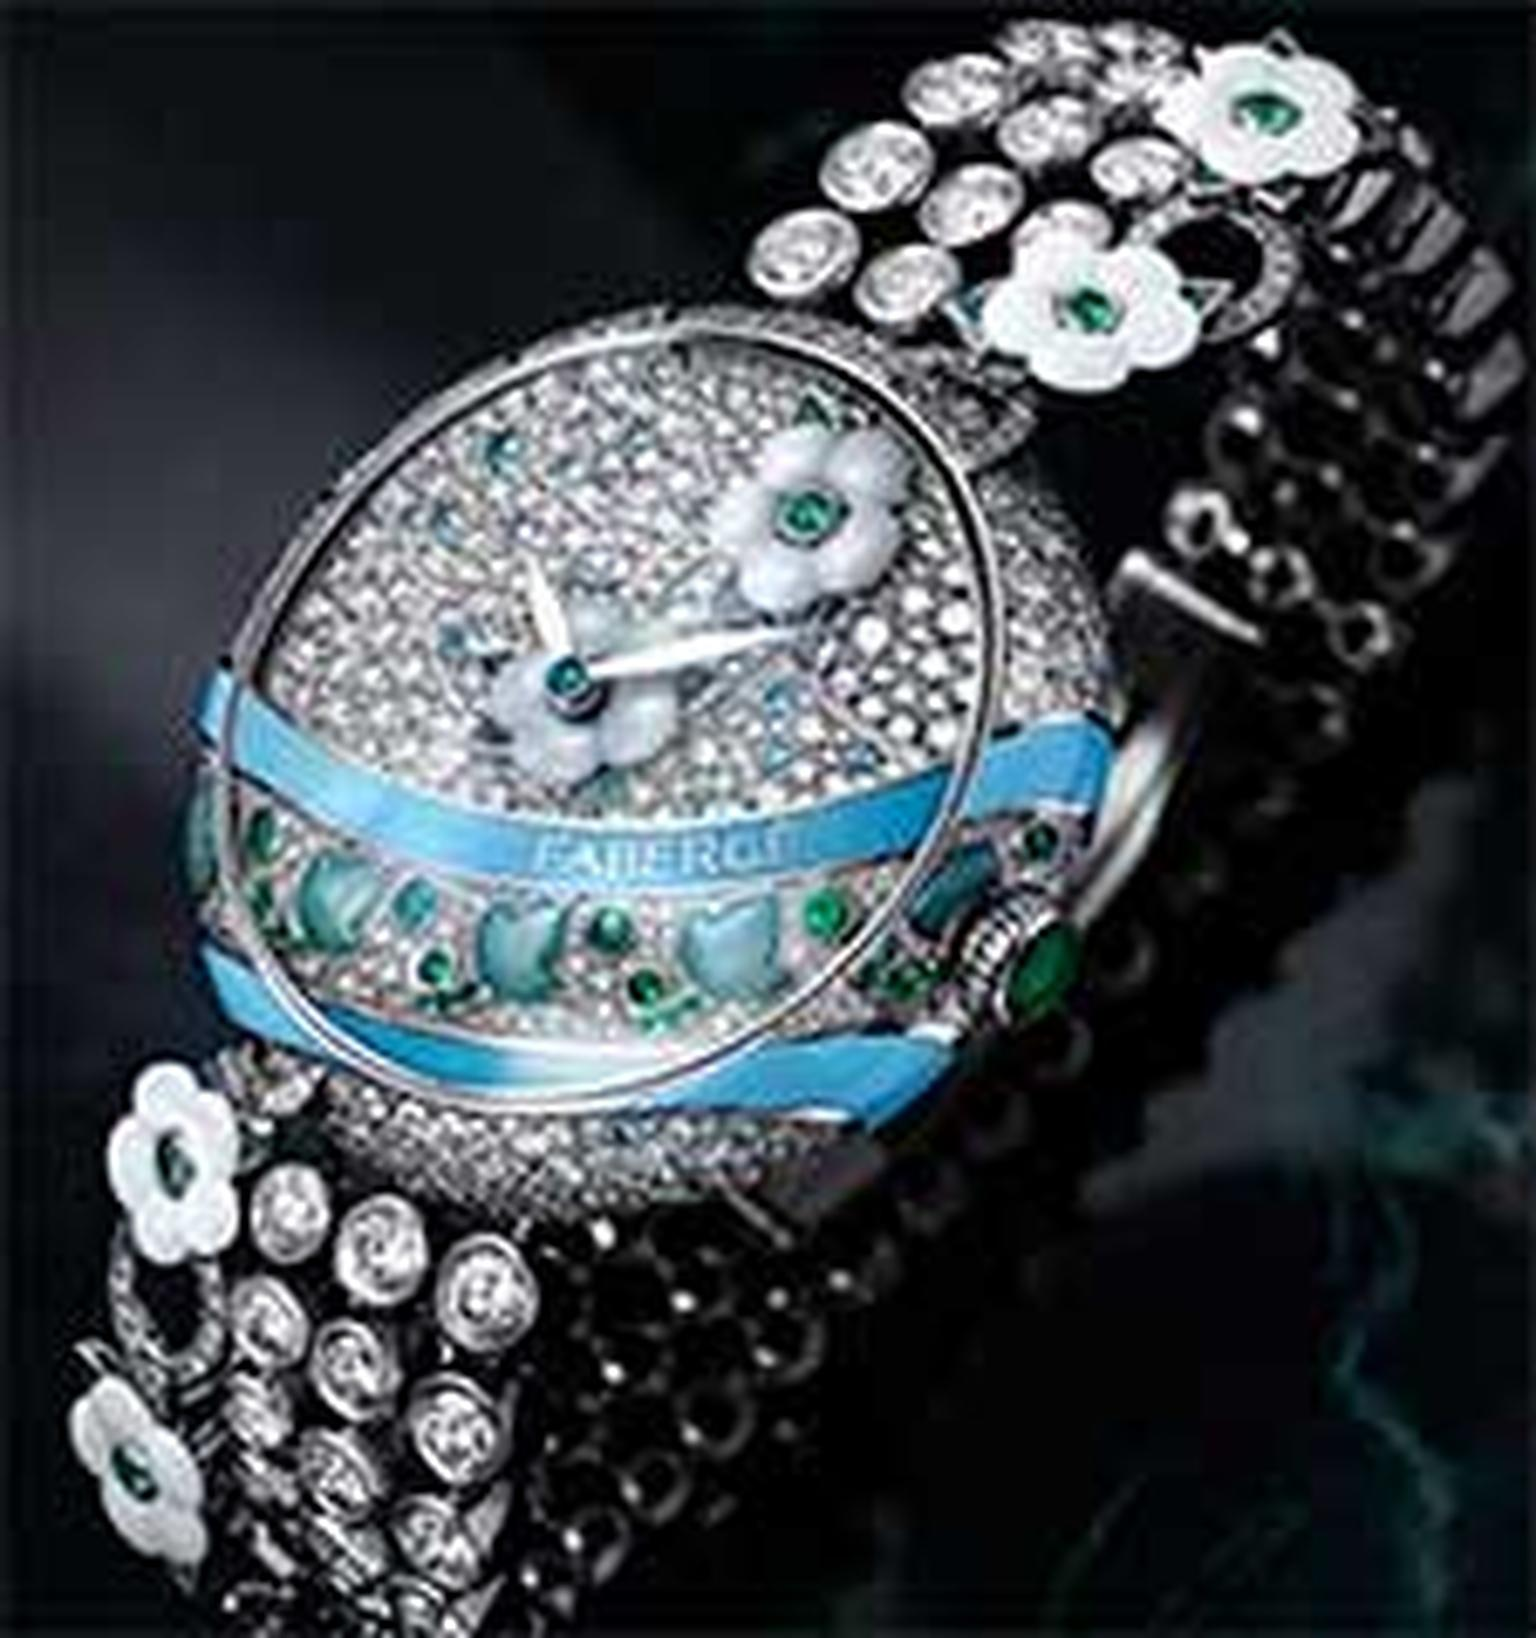 Fabergé jewellery watch